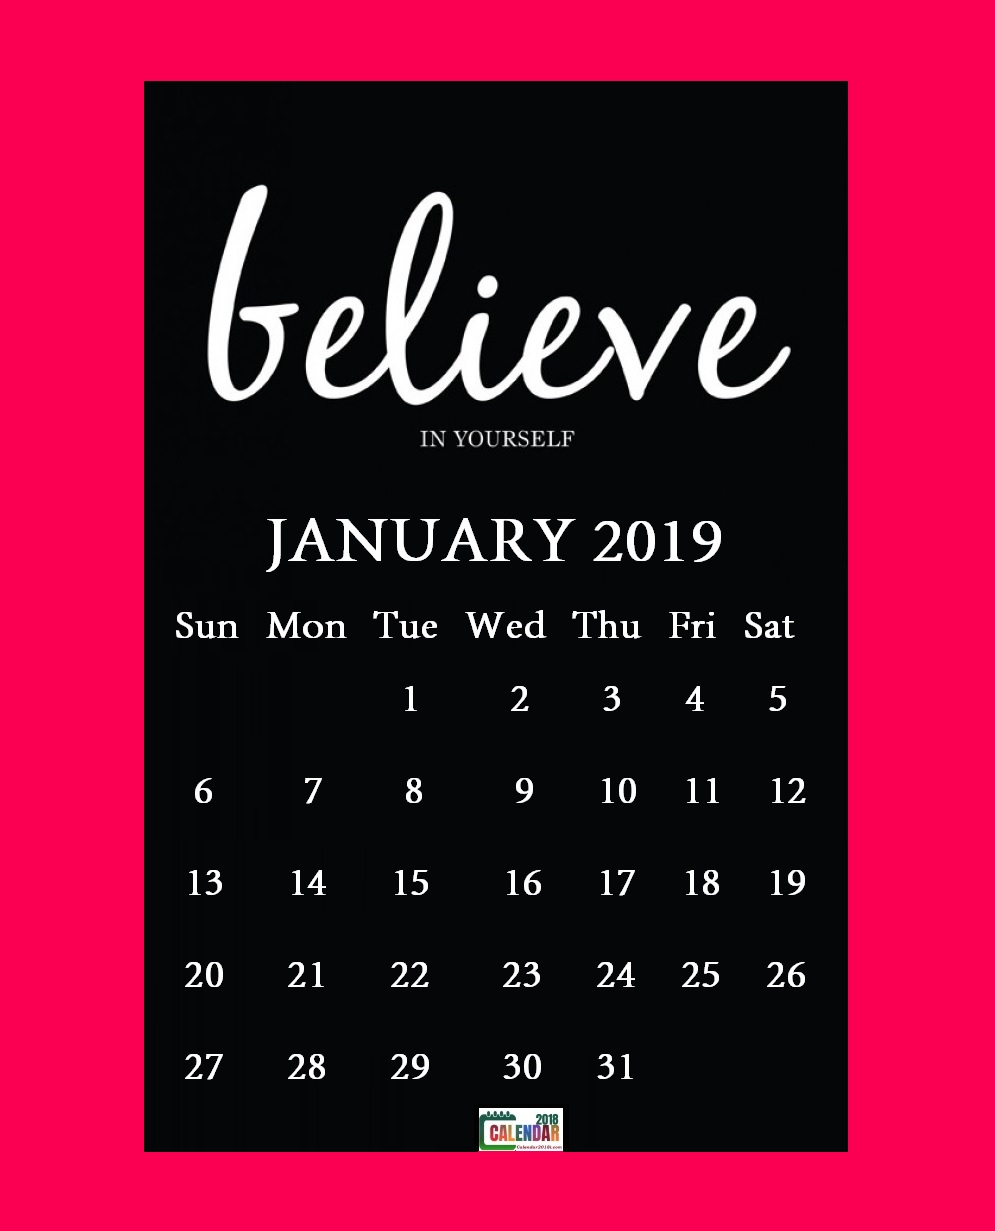 January 2019 Motivational Quotes Calendar